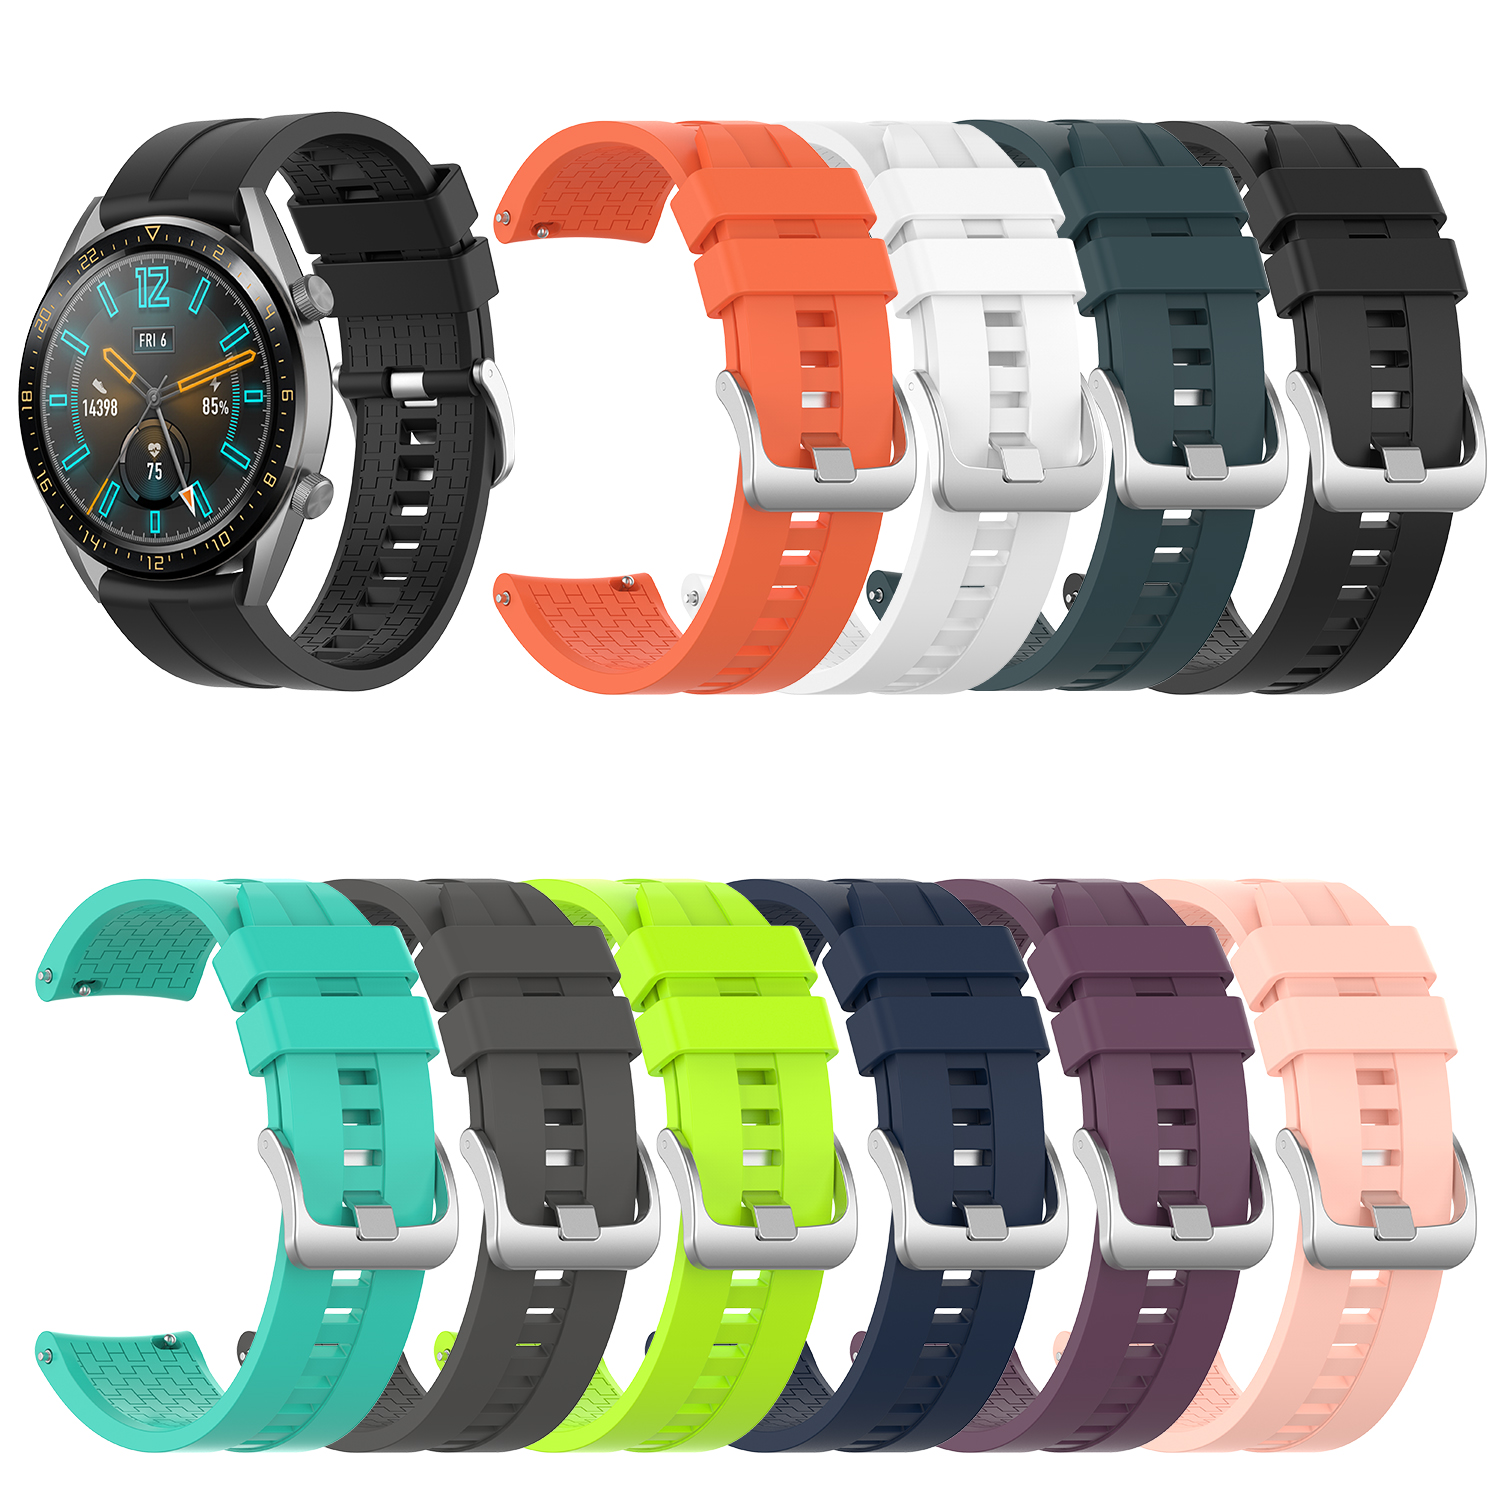 Watch Smartwatch Watchband Replacement Accessories For Huawei Watch GT 46mm Official Silicone Strap Universal Display Width 22MM